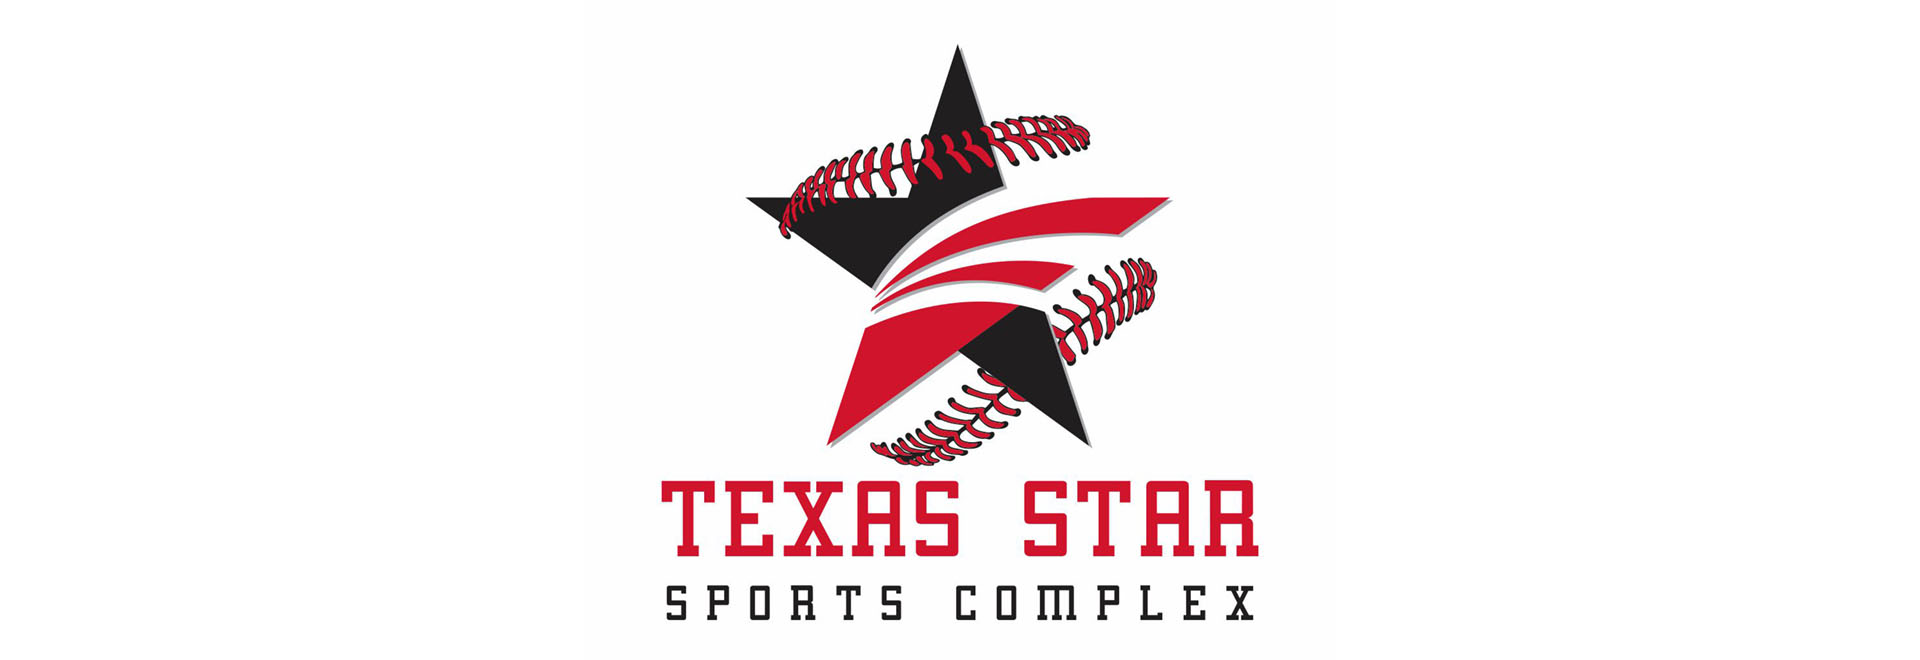 Texas Star Sports Complex Logo